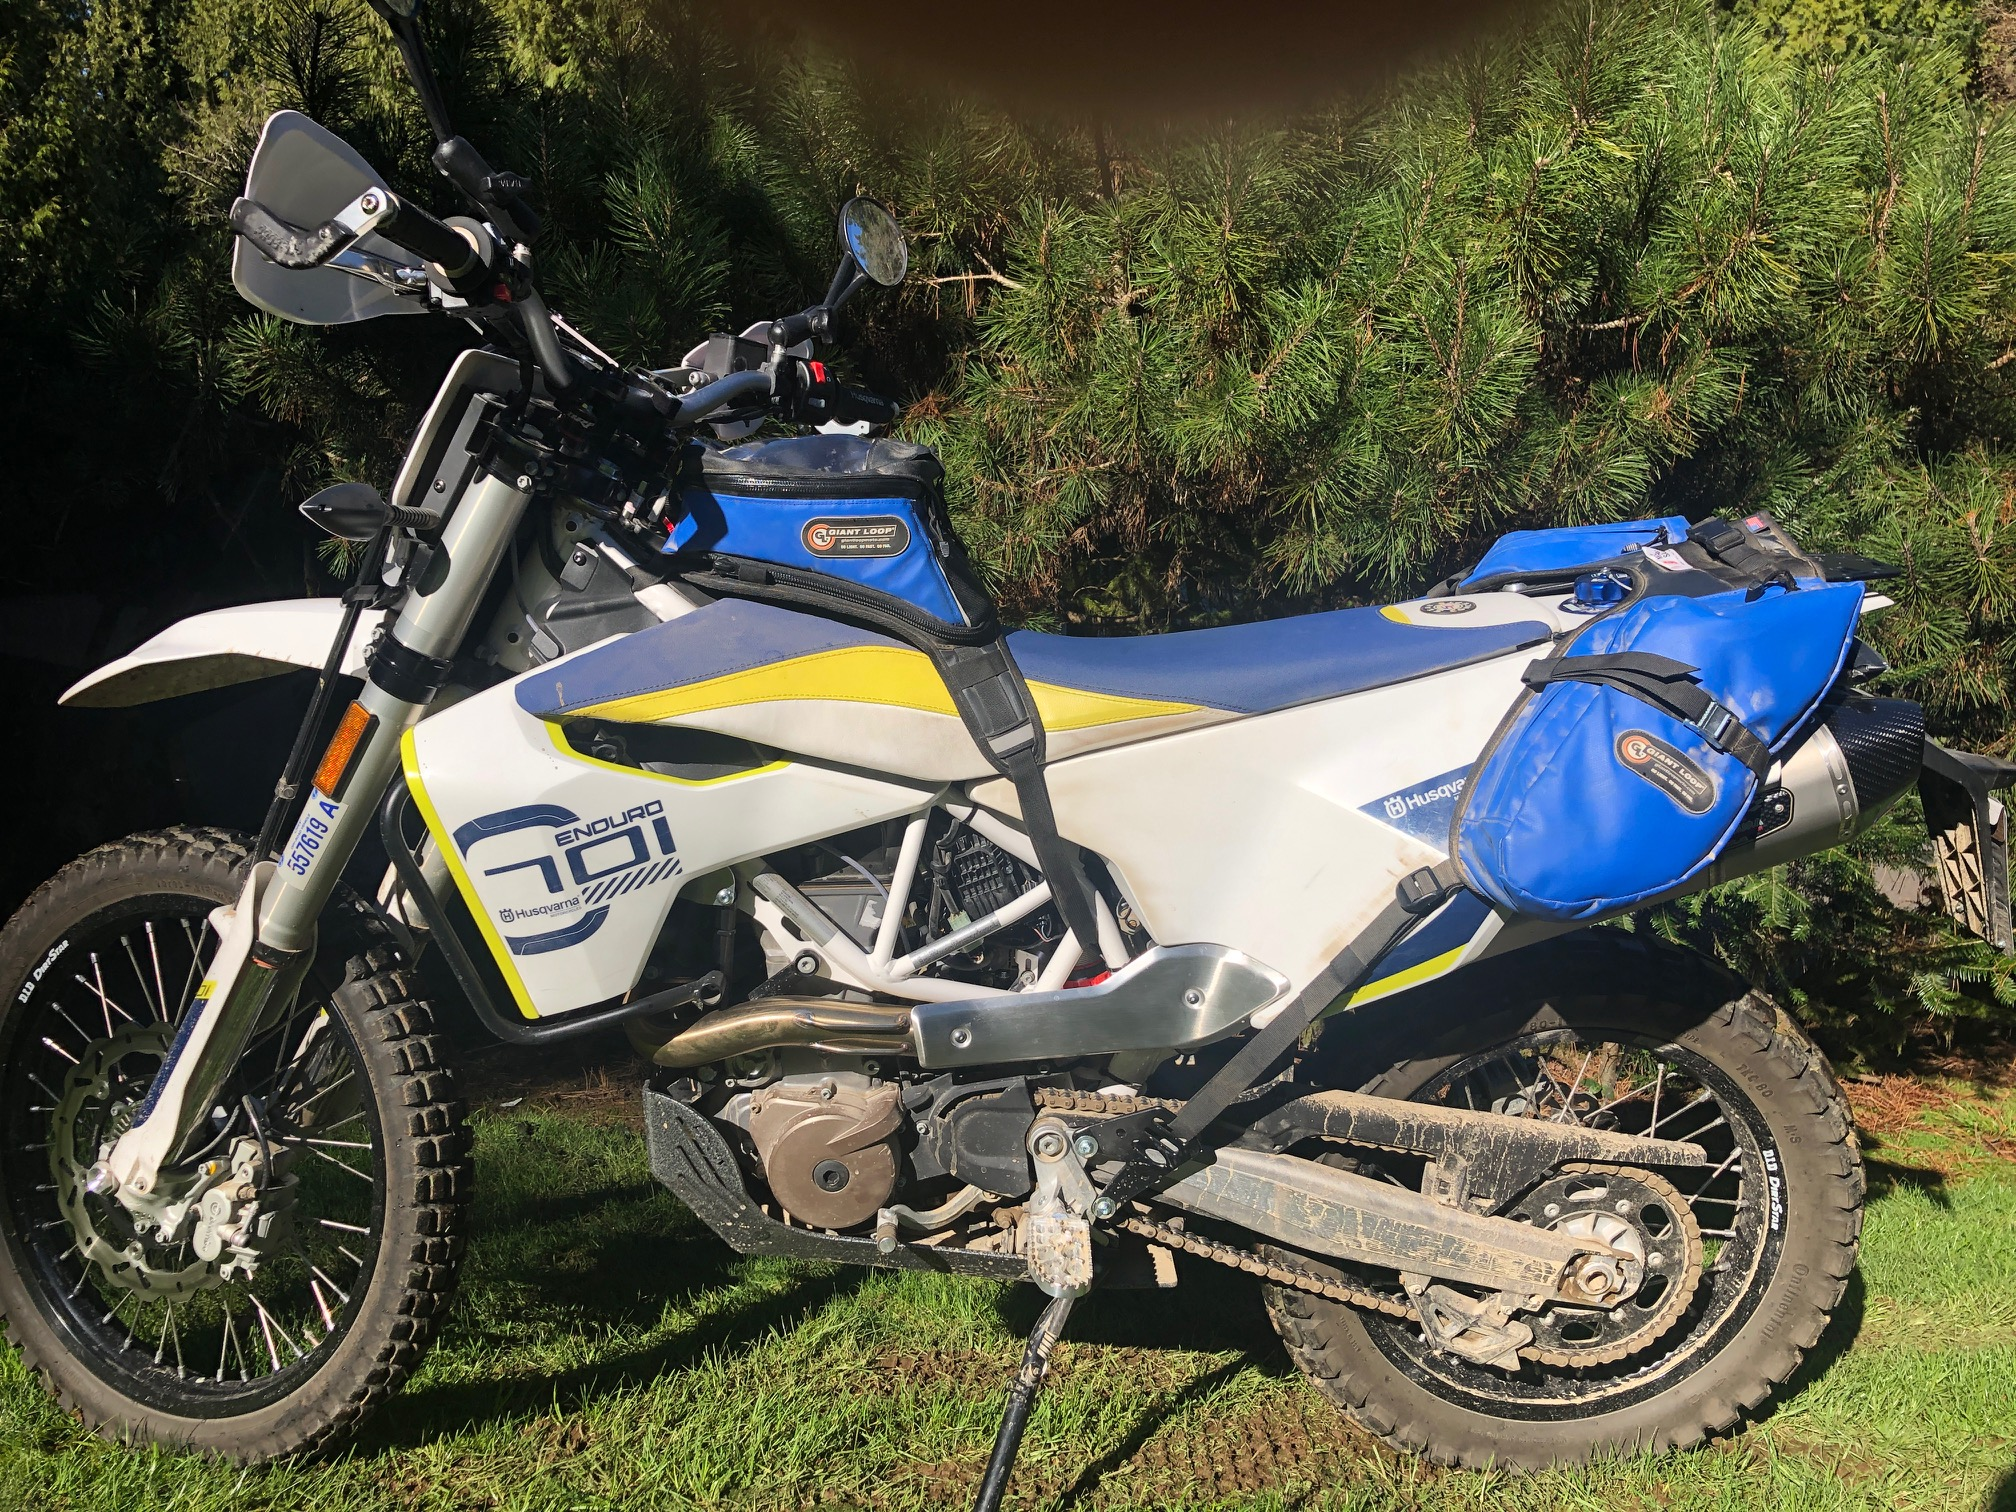 Husqvarna 701 With Diablo Tank Bag and MoJavi Saddlebag